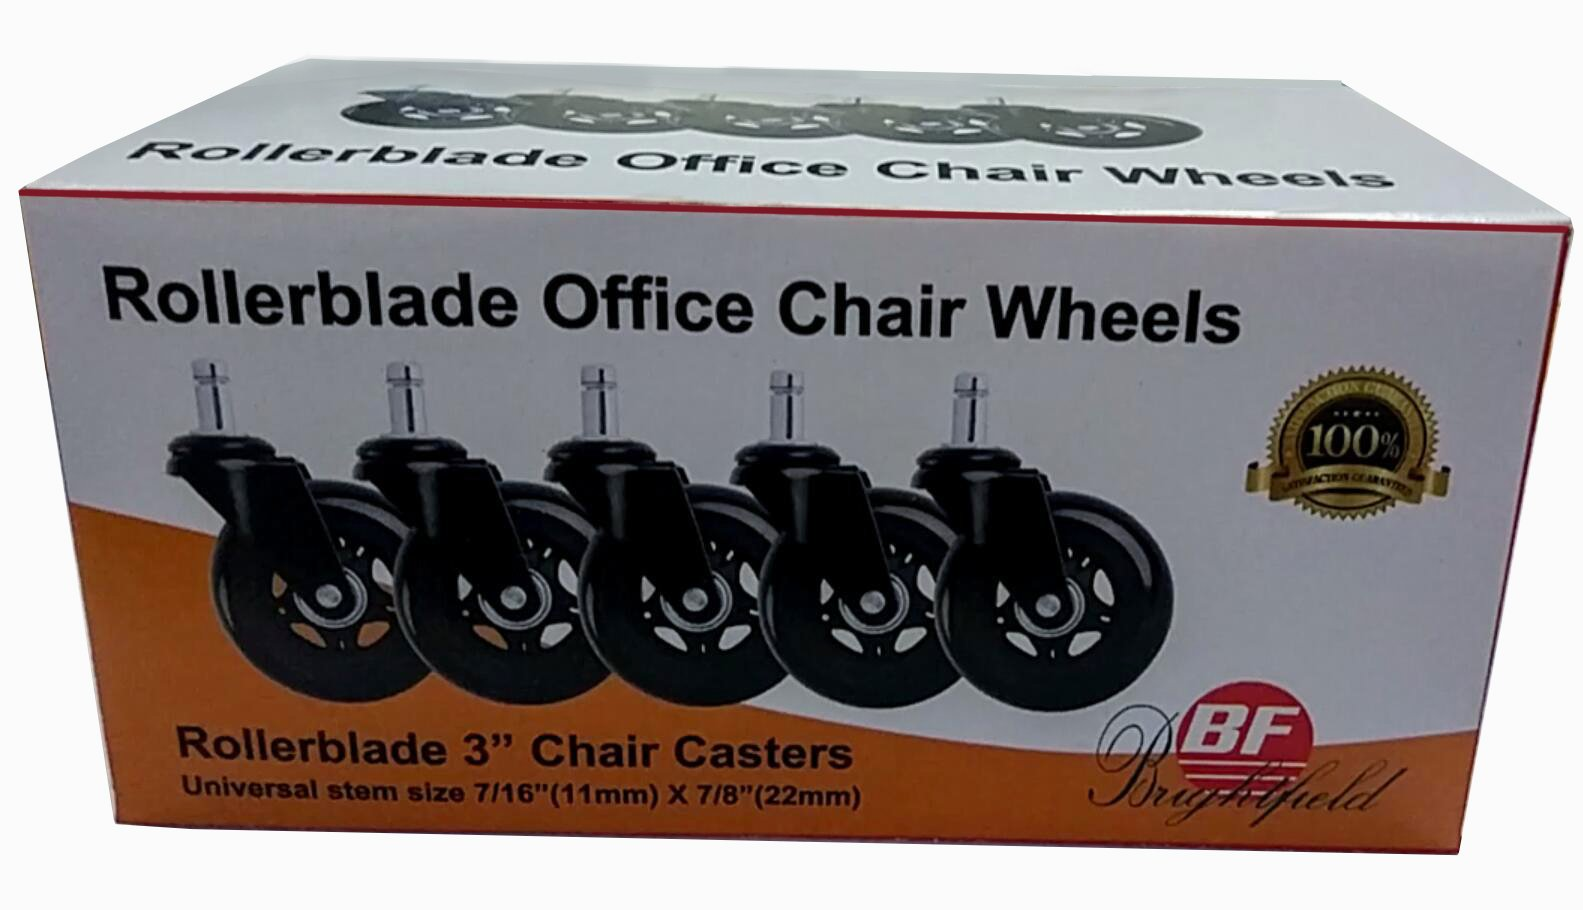 Universal Office Chair Caster Wheels Set of 5 Heavy Duty & Safe for All Floors Including Hardwood 3'' Rollerblade Rubber Replacement for Desk Floor Mats by BF BRIGHTFIELD (Image #5)